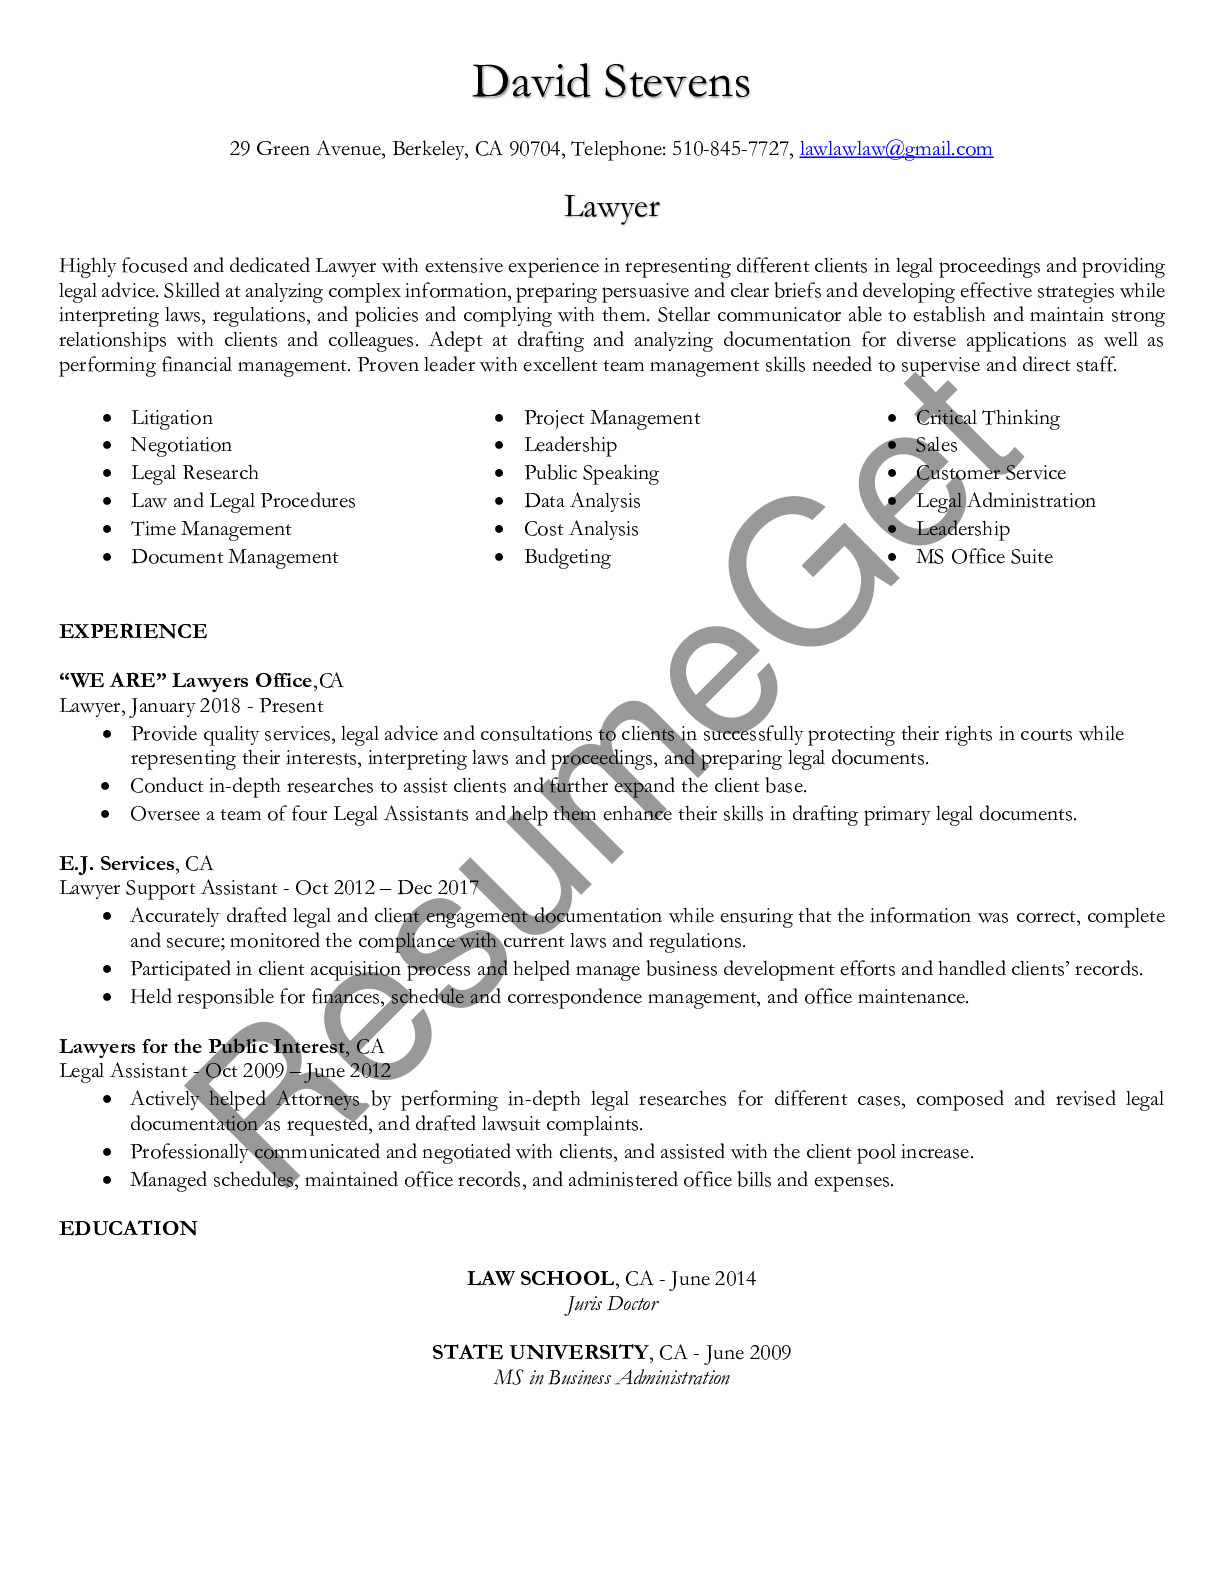 Resume Example for Lawyer